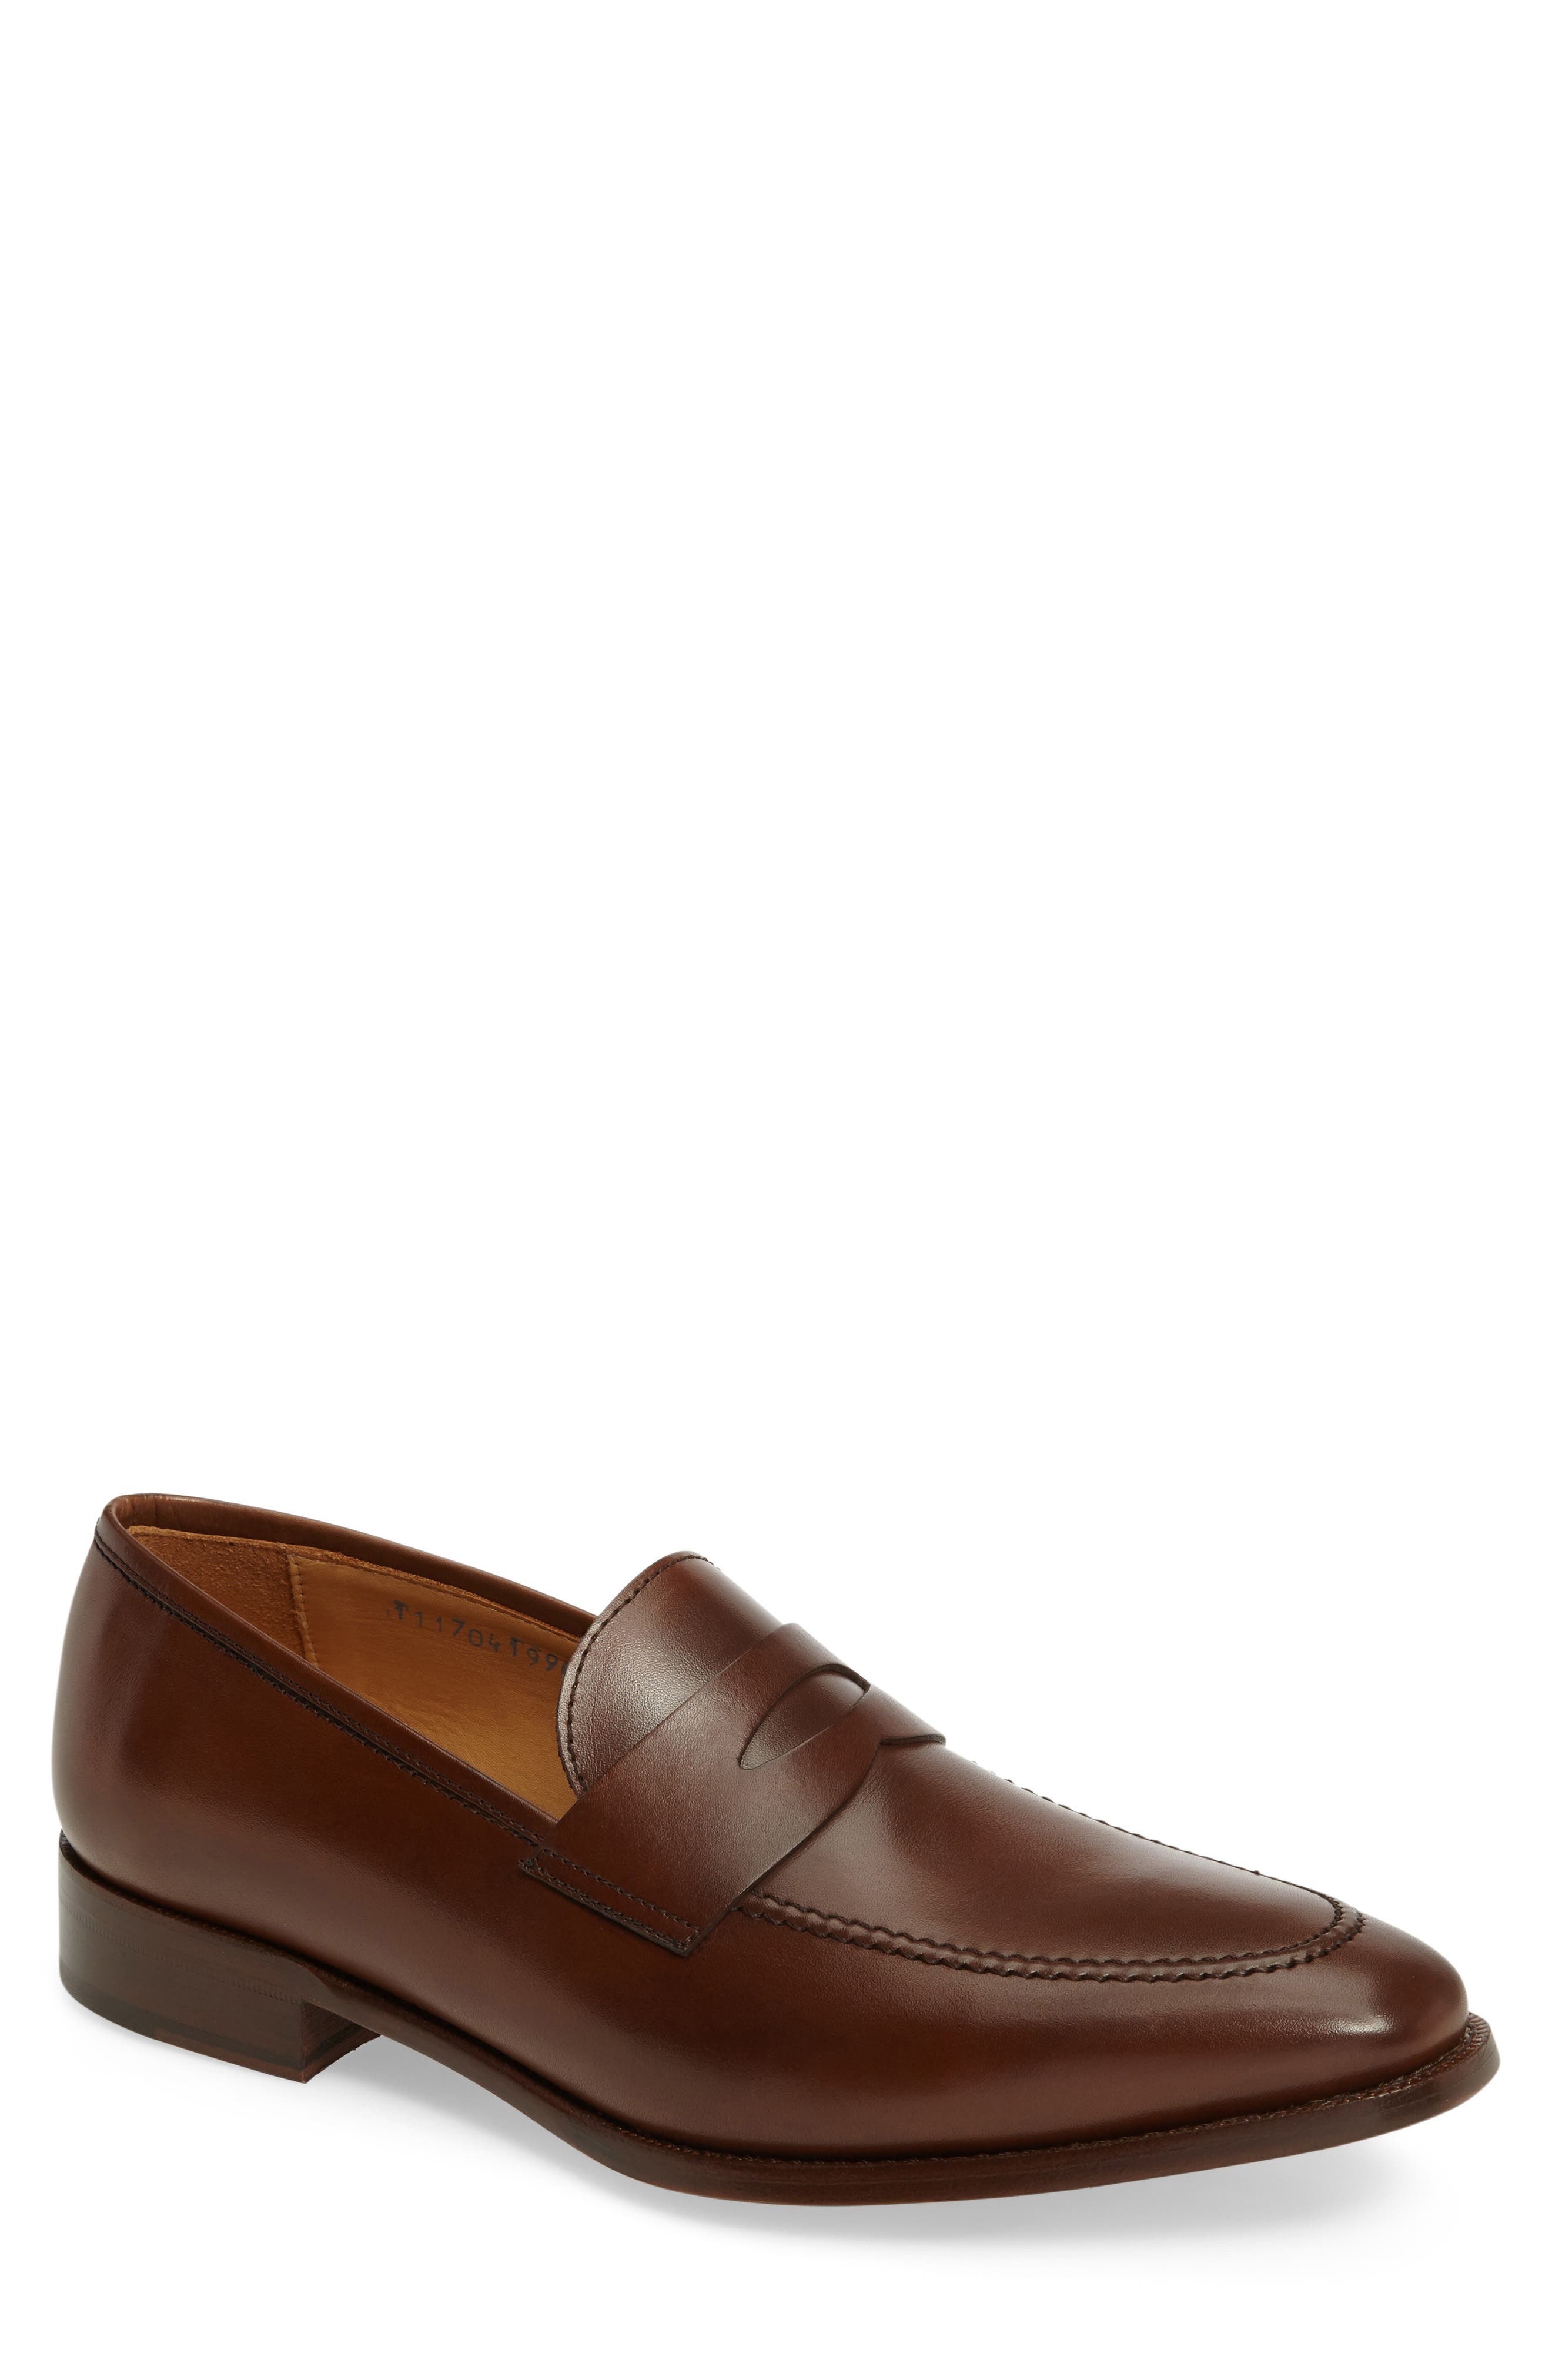 Abe Penny Loafer,                             Main thumbnail 1, color,                             Hazelnut Leather